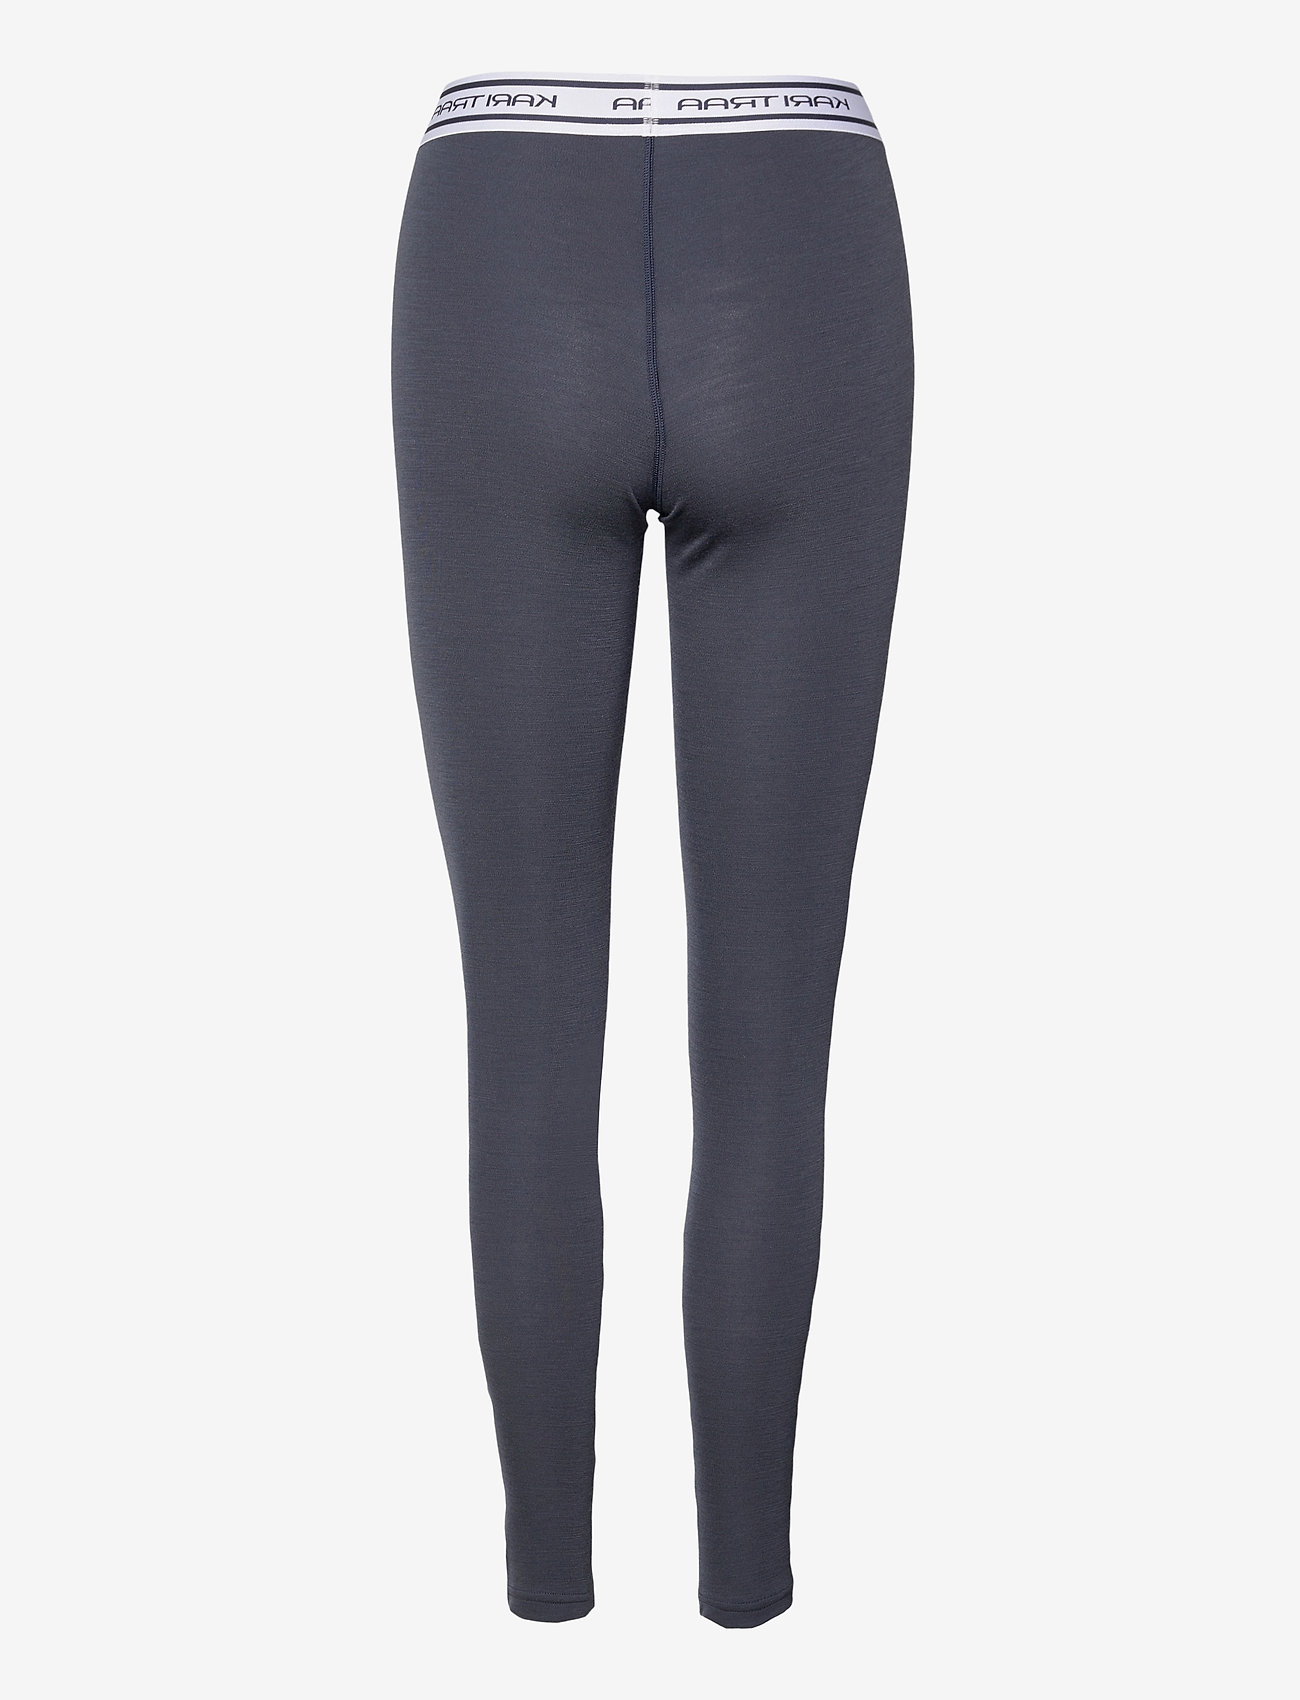 Kari Traa - KONGLE PANT - base layer bottoms - marin - 1